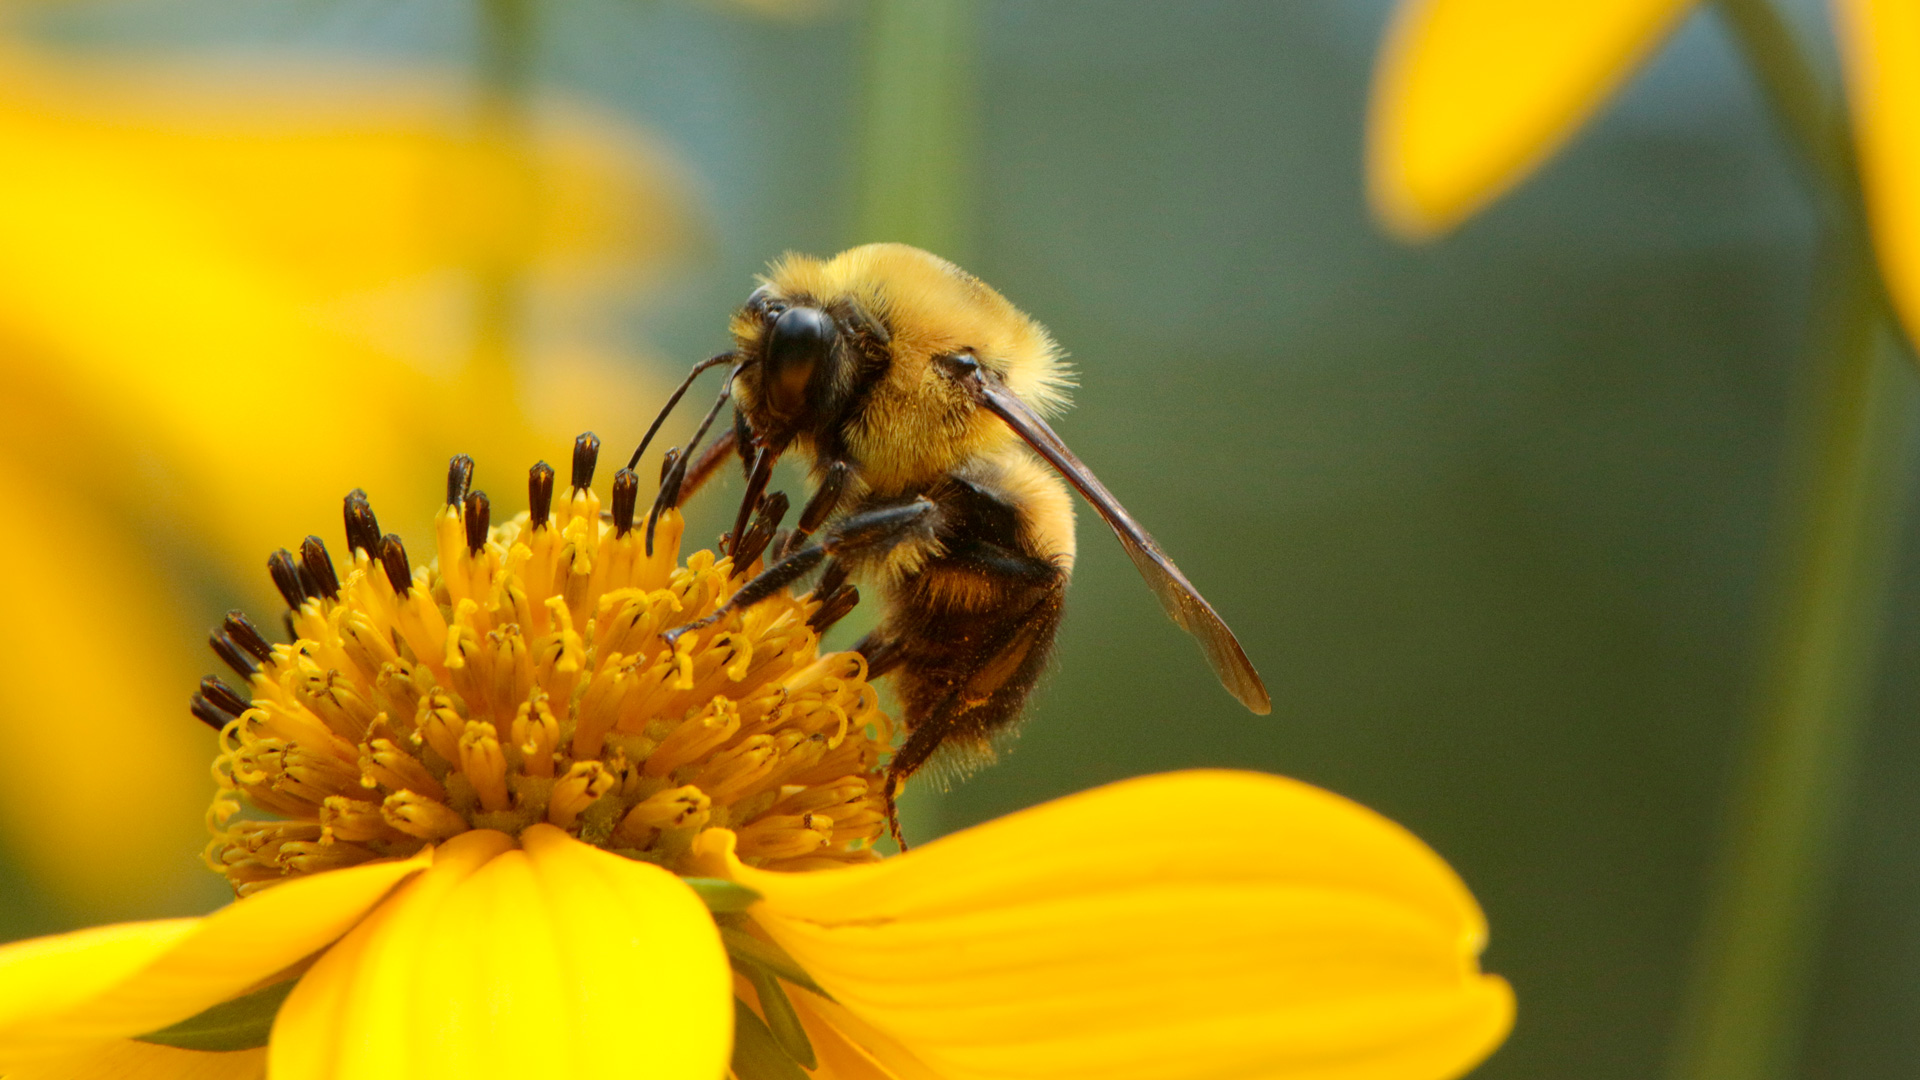 Pollinating animals like bees help 75% of the world's crops grow.